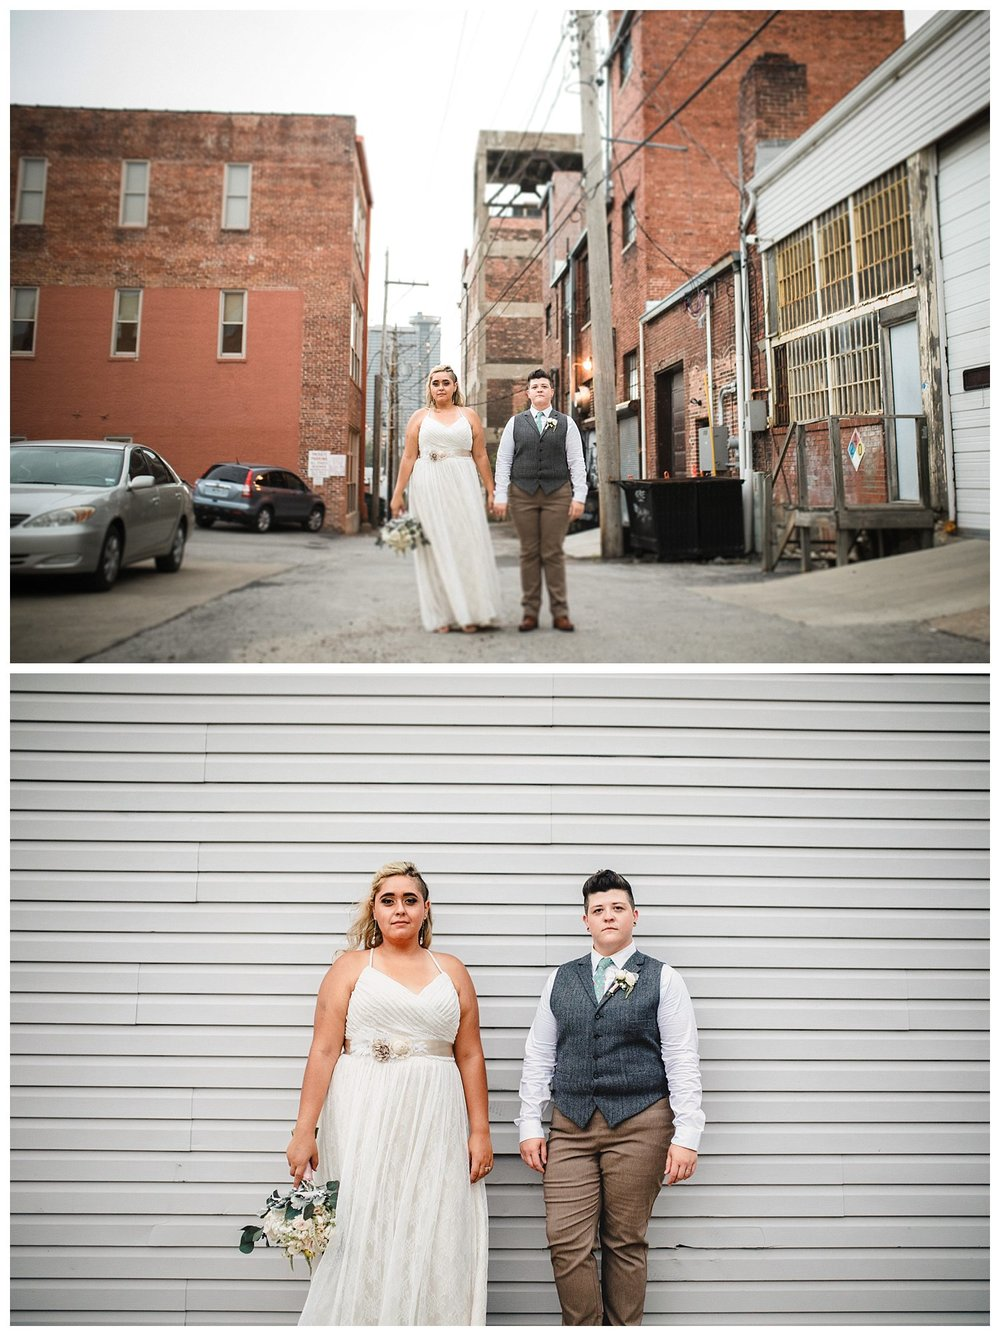 Kelsey_Diane_Photography_The_Vow_Exchange_Kansas_City_LGBT_Friendly_Wedding_Photographer_Kansas_City_Scout_Ica_0753.jpg